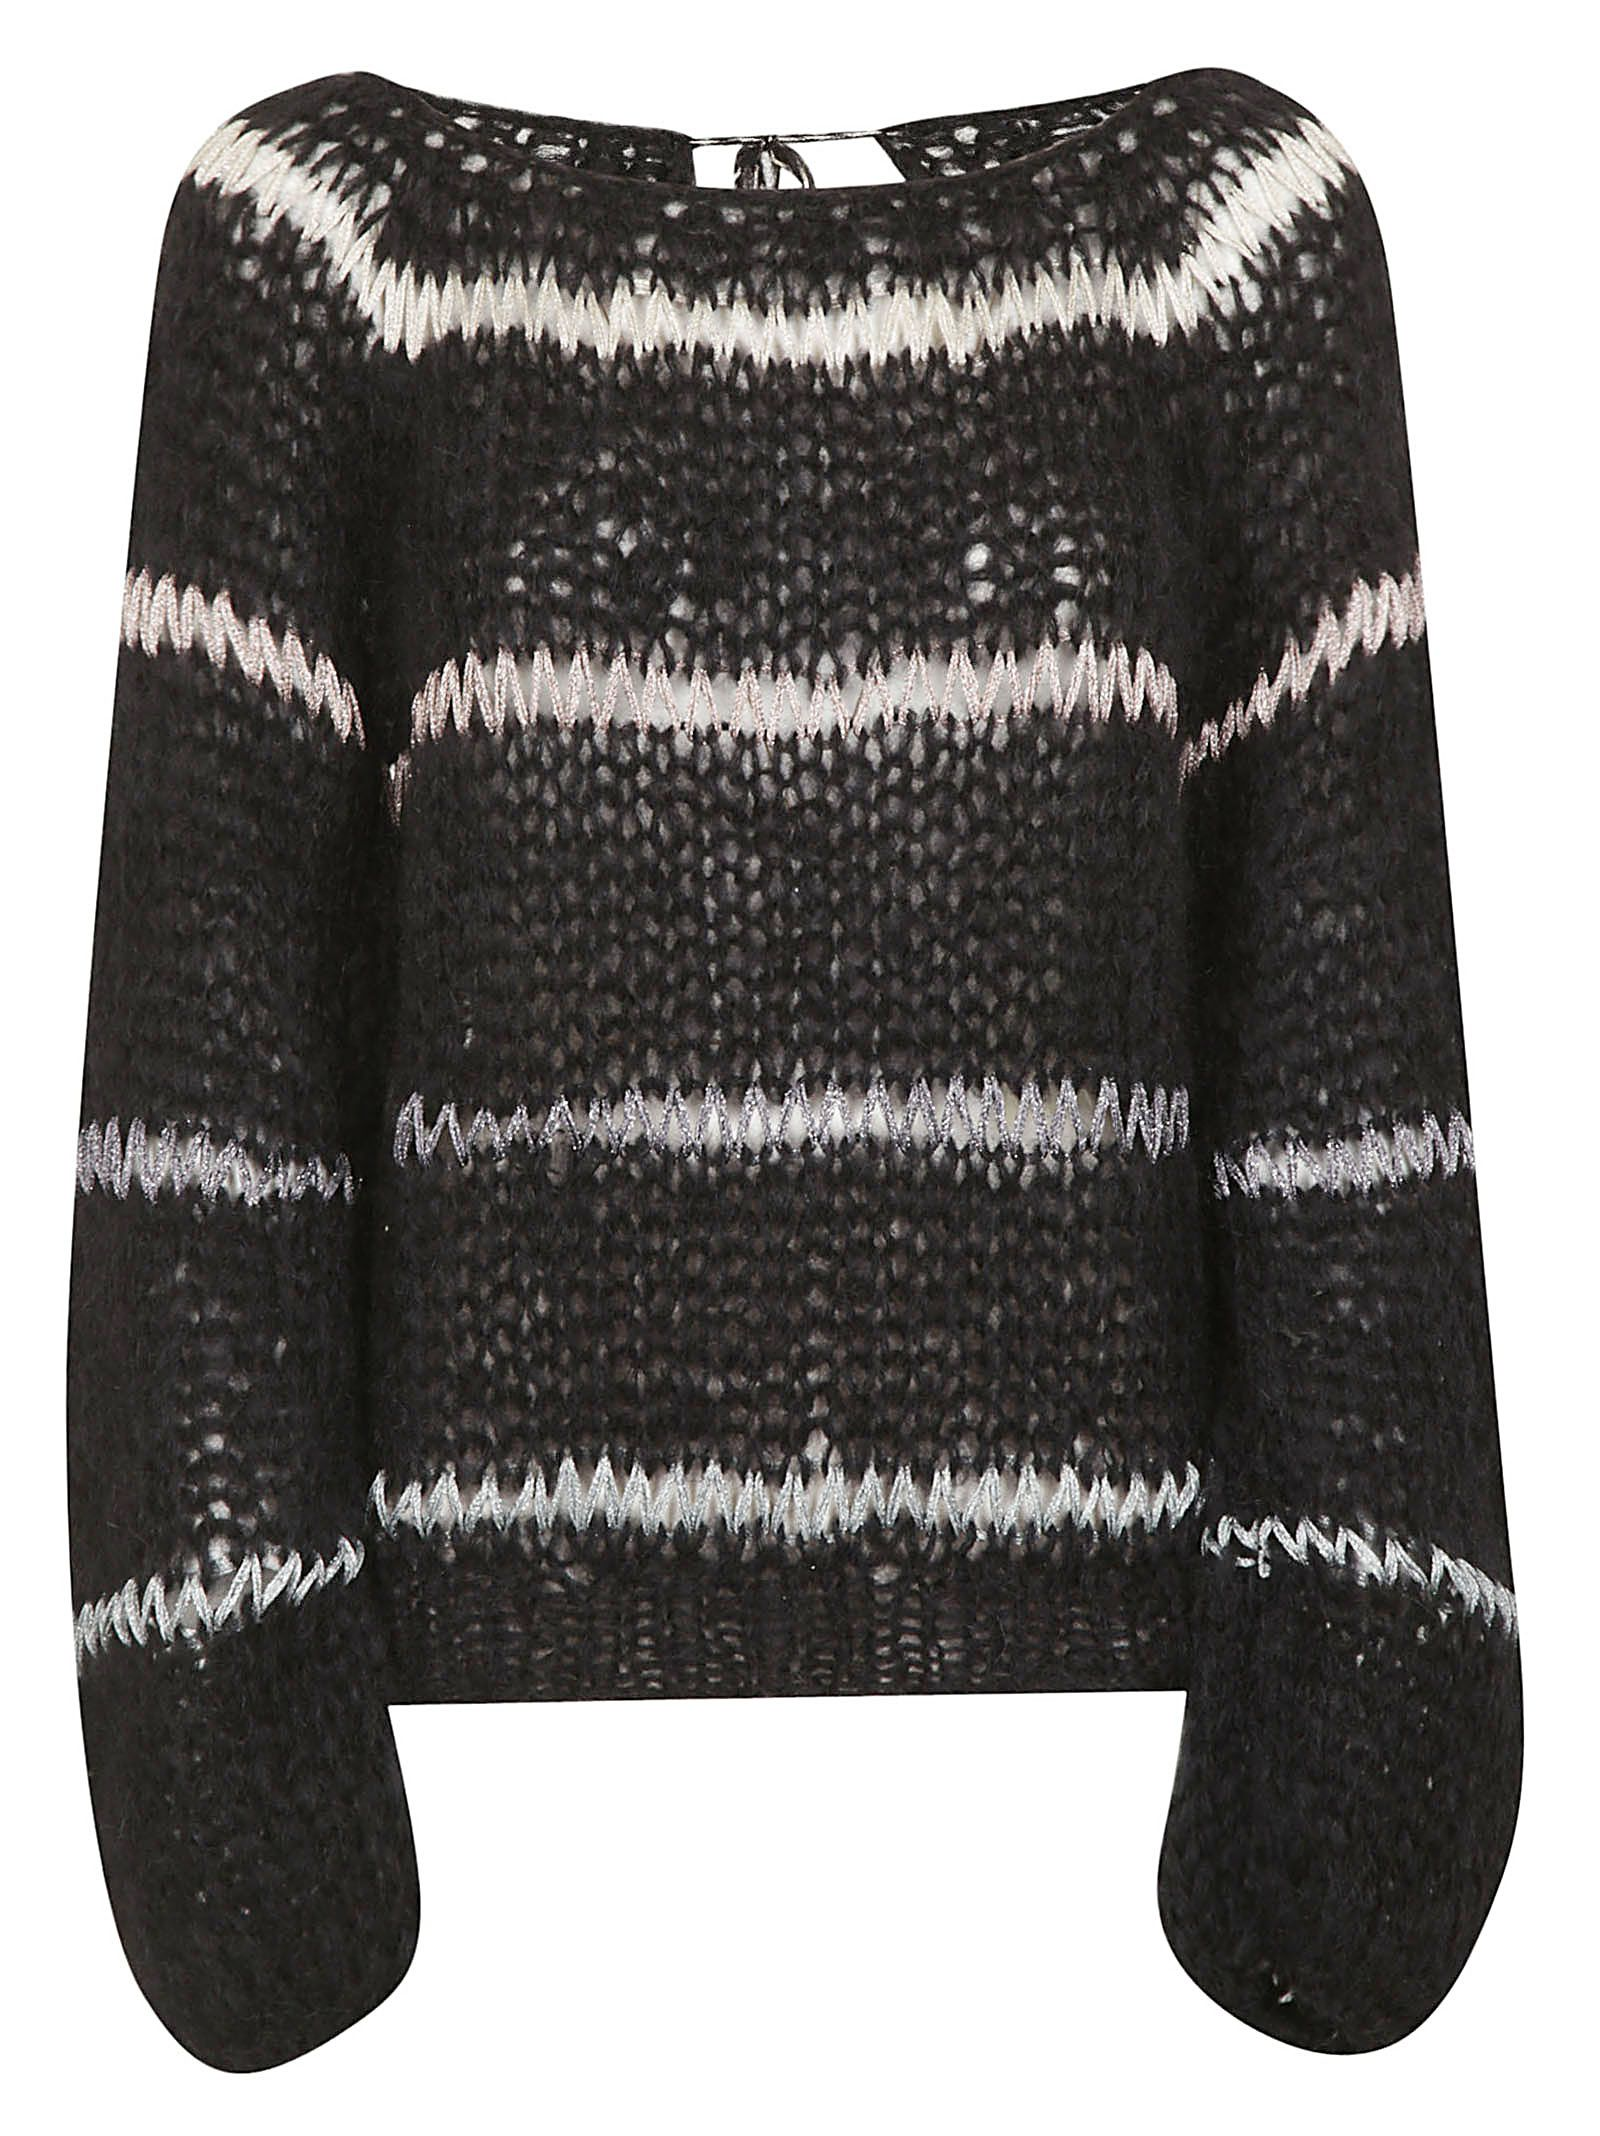 MAIAMI Maiami Perforated Sweater in Black